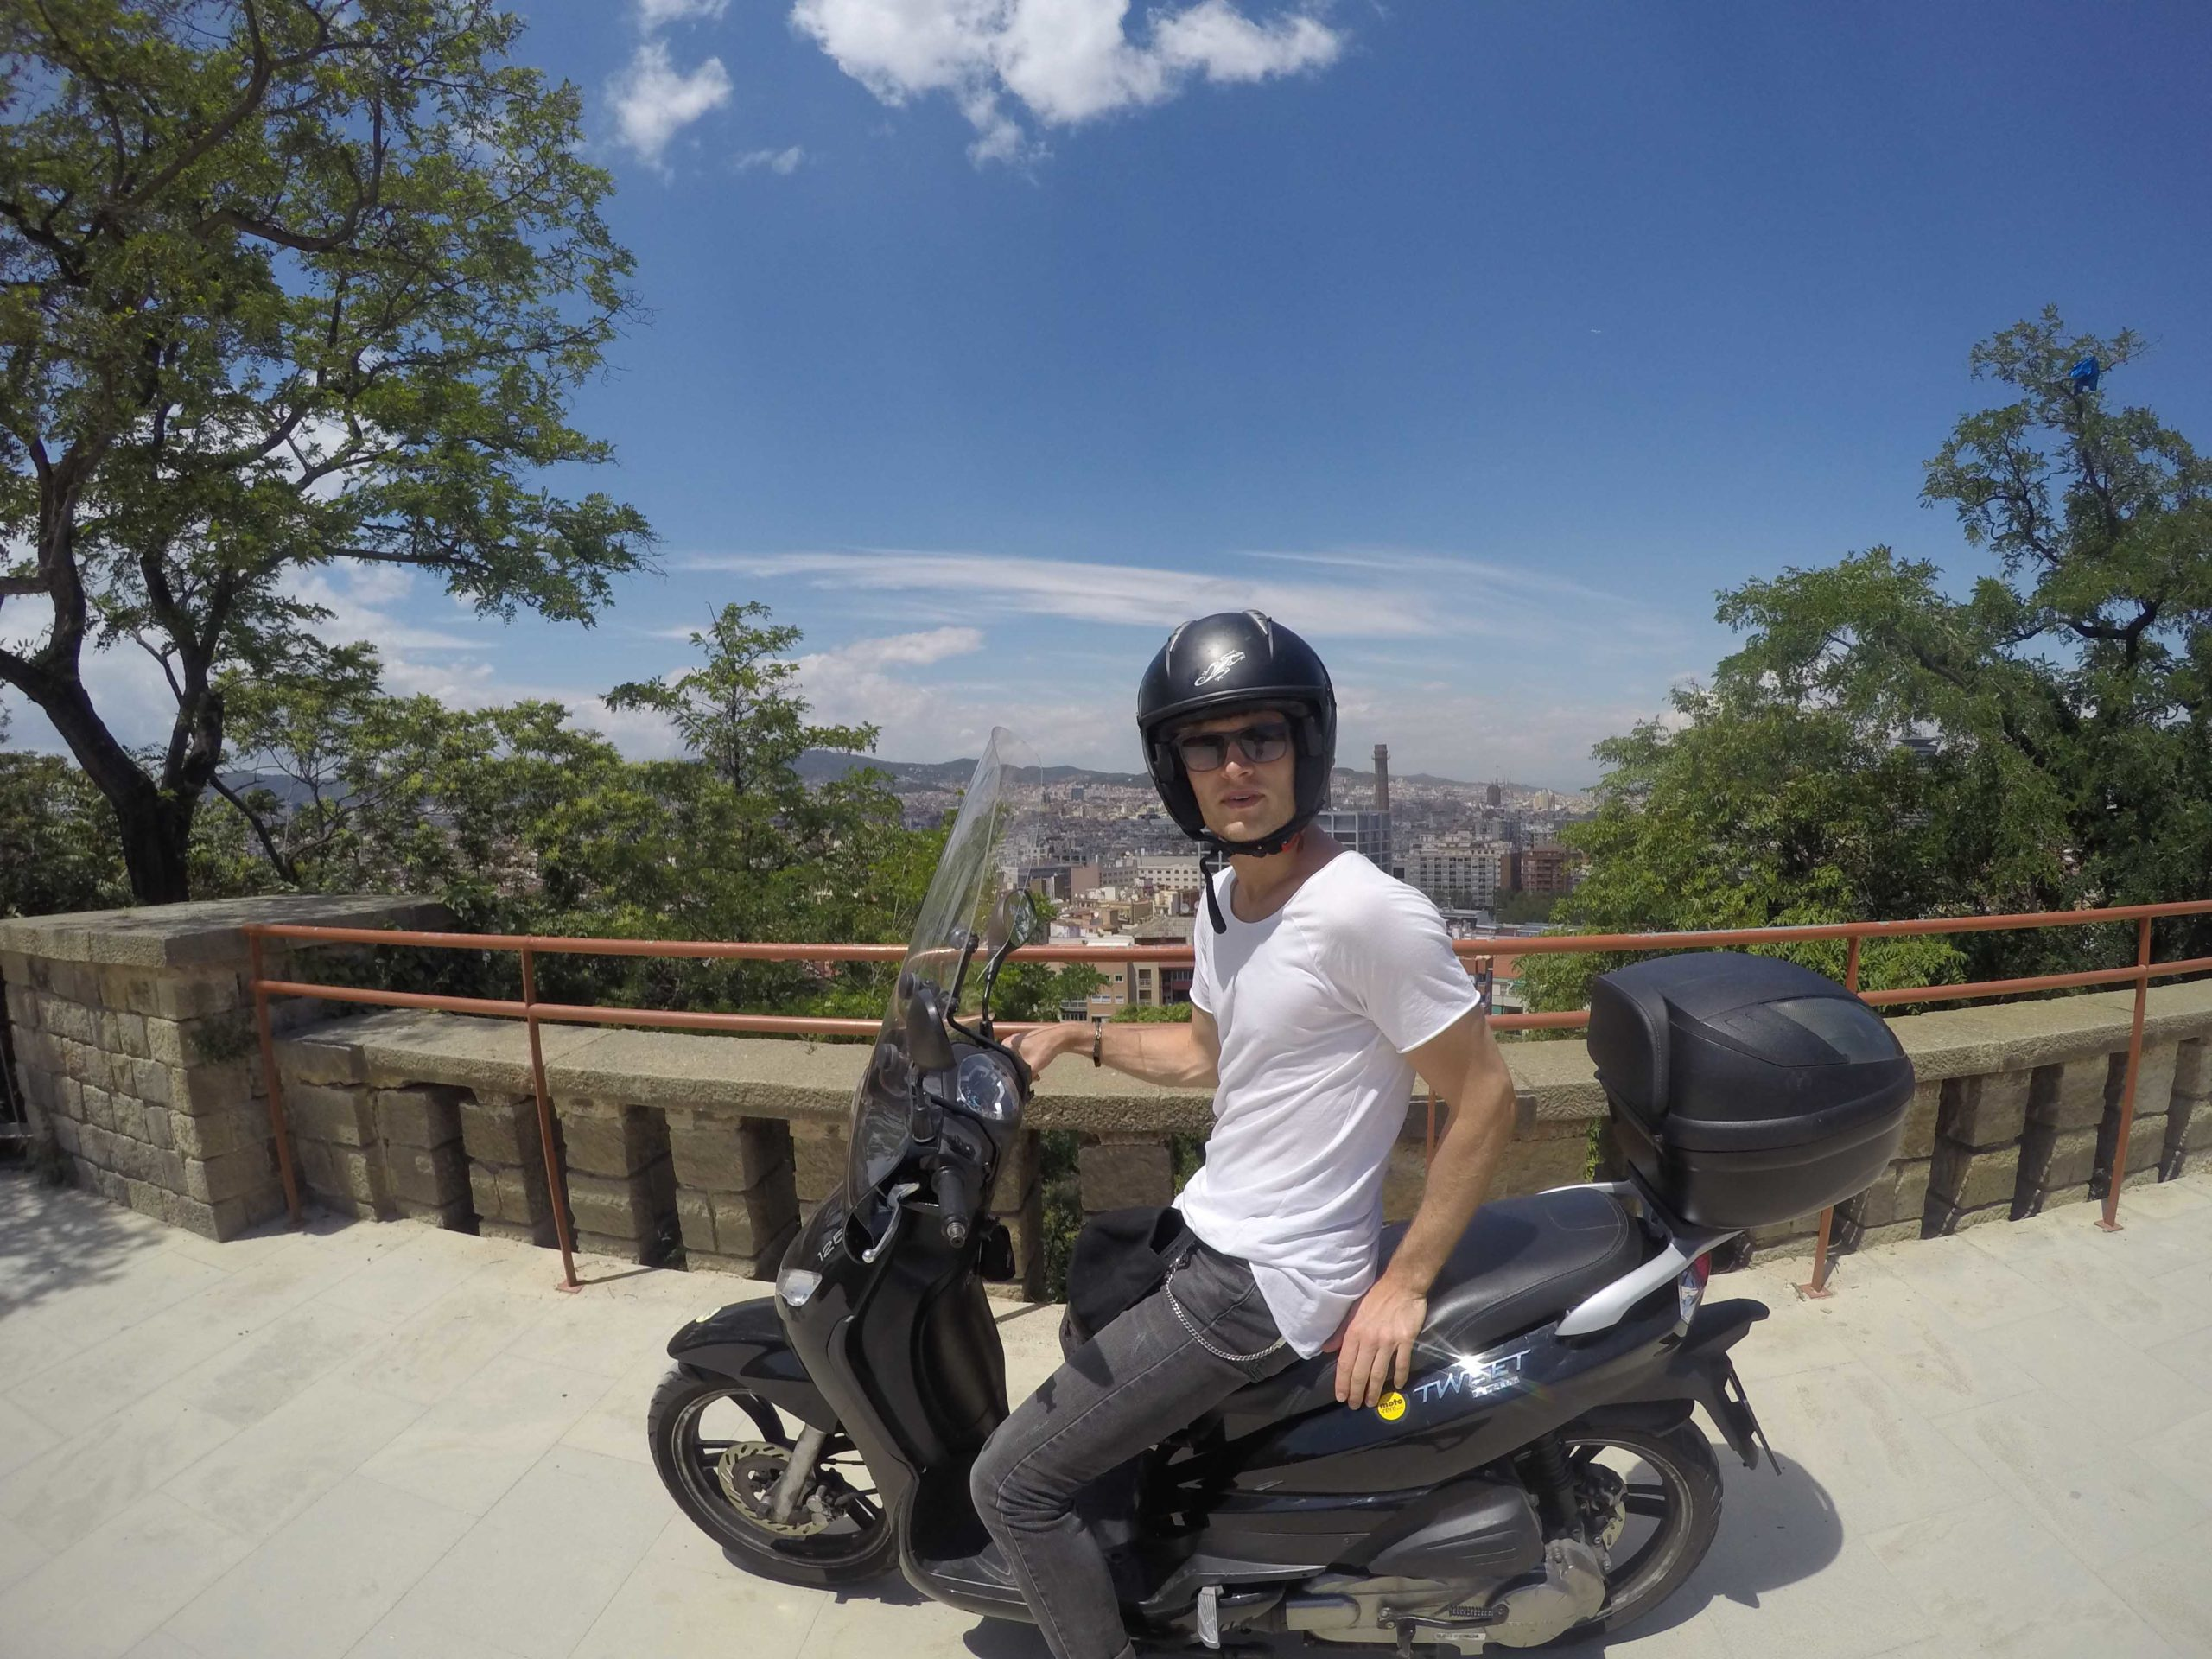 moto rent in Barcelona